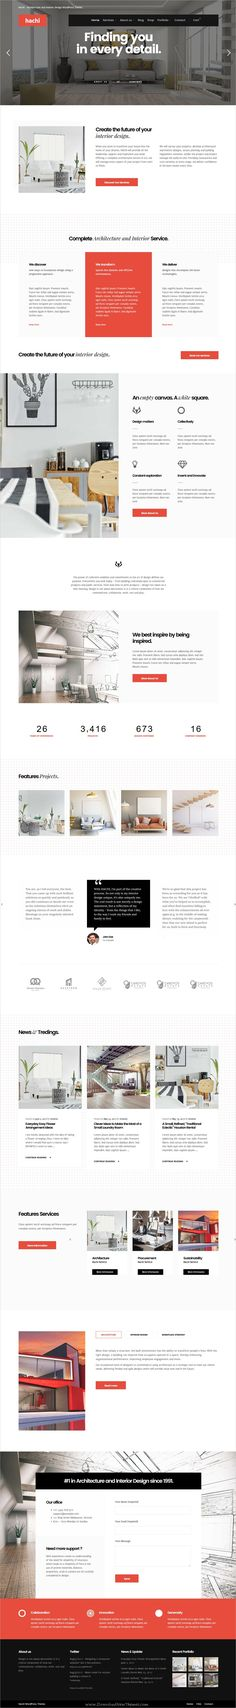 Hachi is clean and modern design responsive #WordPress theme for #architecture and #interior studio website download now..